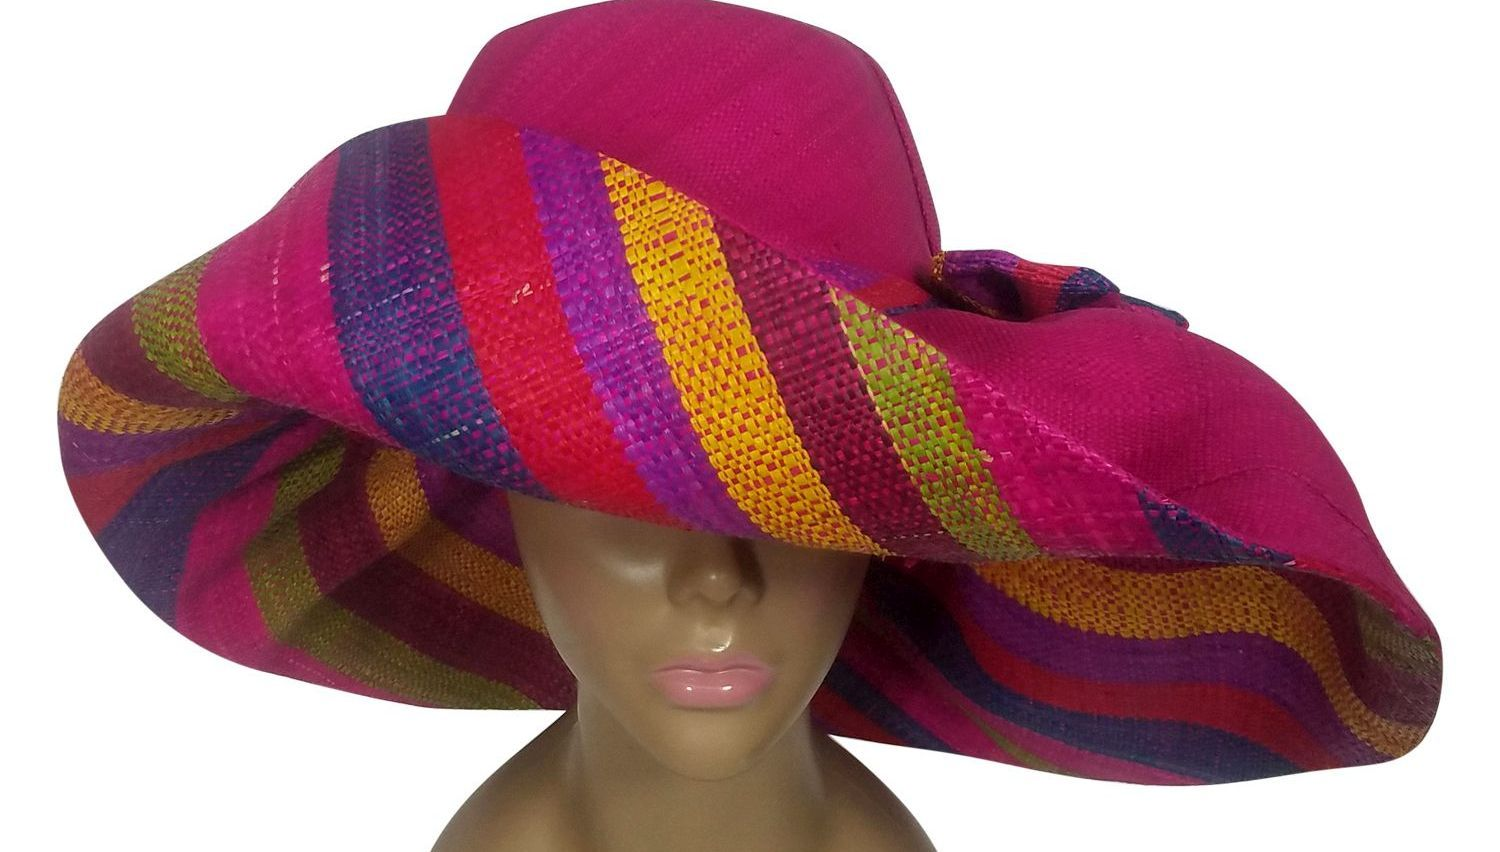 Babirye: Authentic African Handwoven Multicolor Madagascar Big Brim Raffia Sun Hat